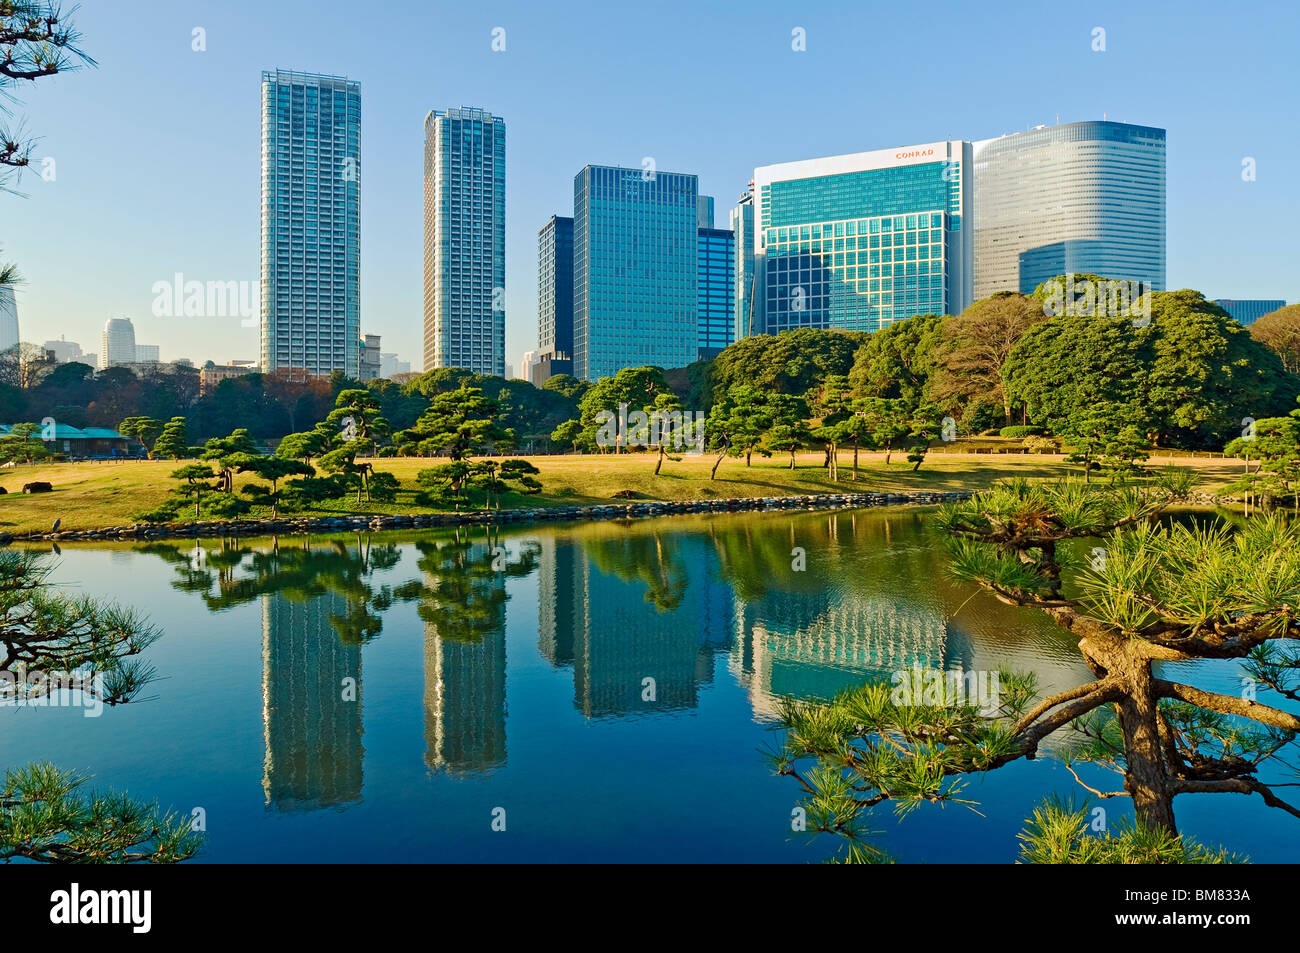 Hama Rikyu Gardens Garden Shiodome Skyline Japan Stock Photo